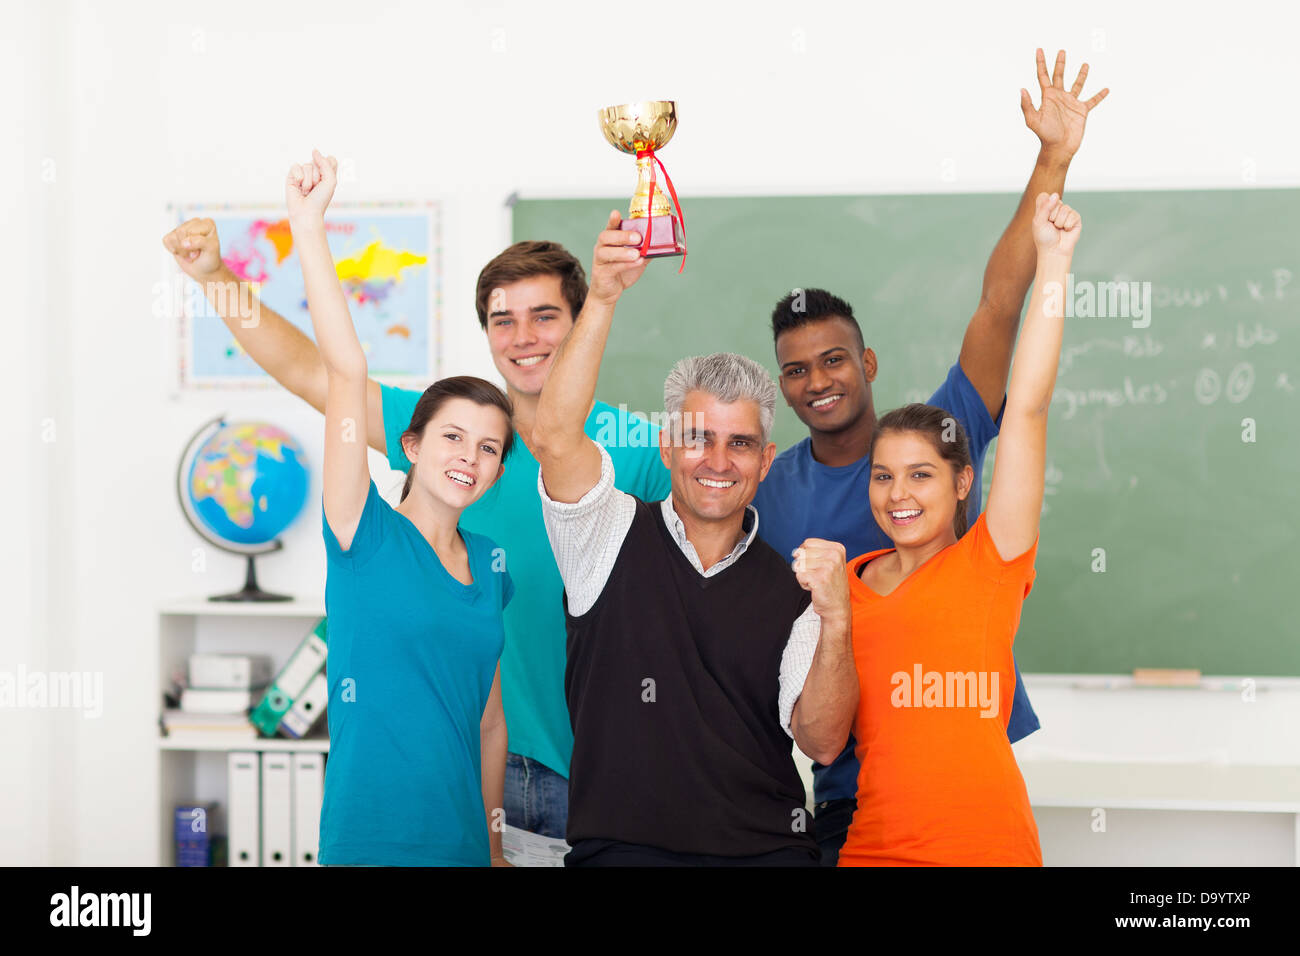 happy high school class wining a trophy - Stock Image